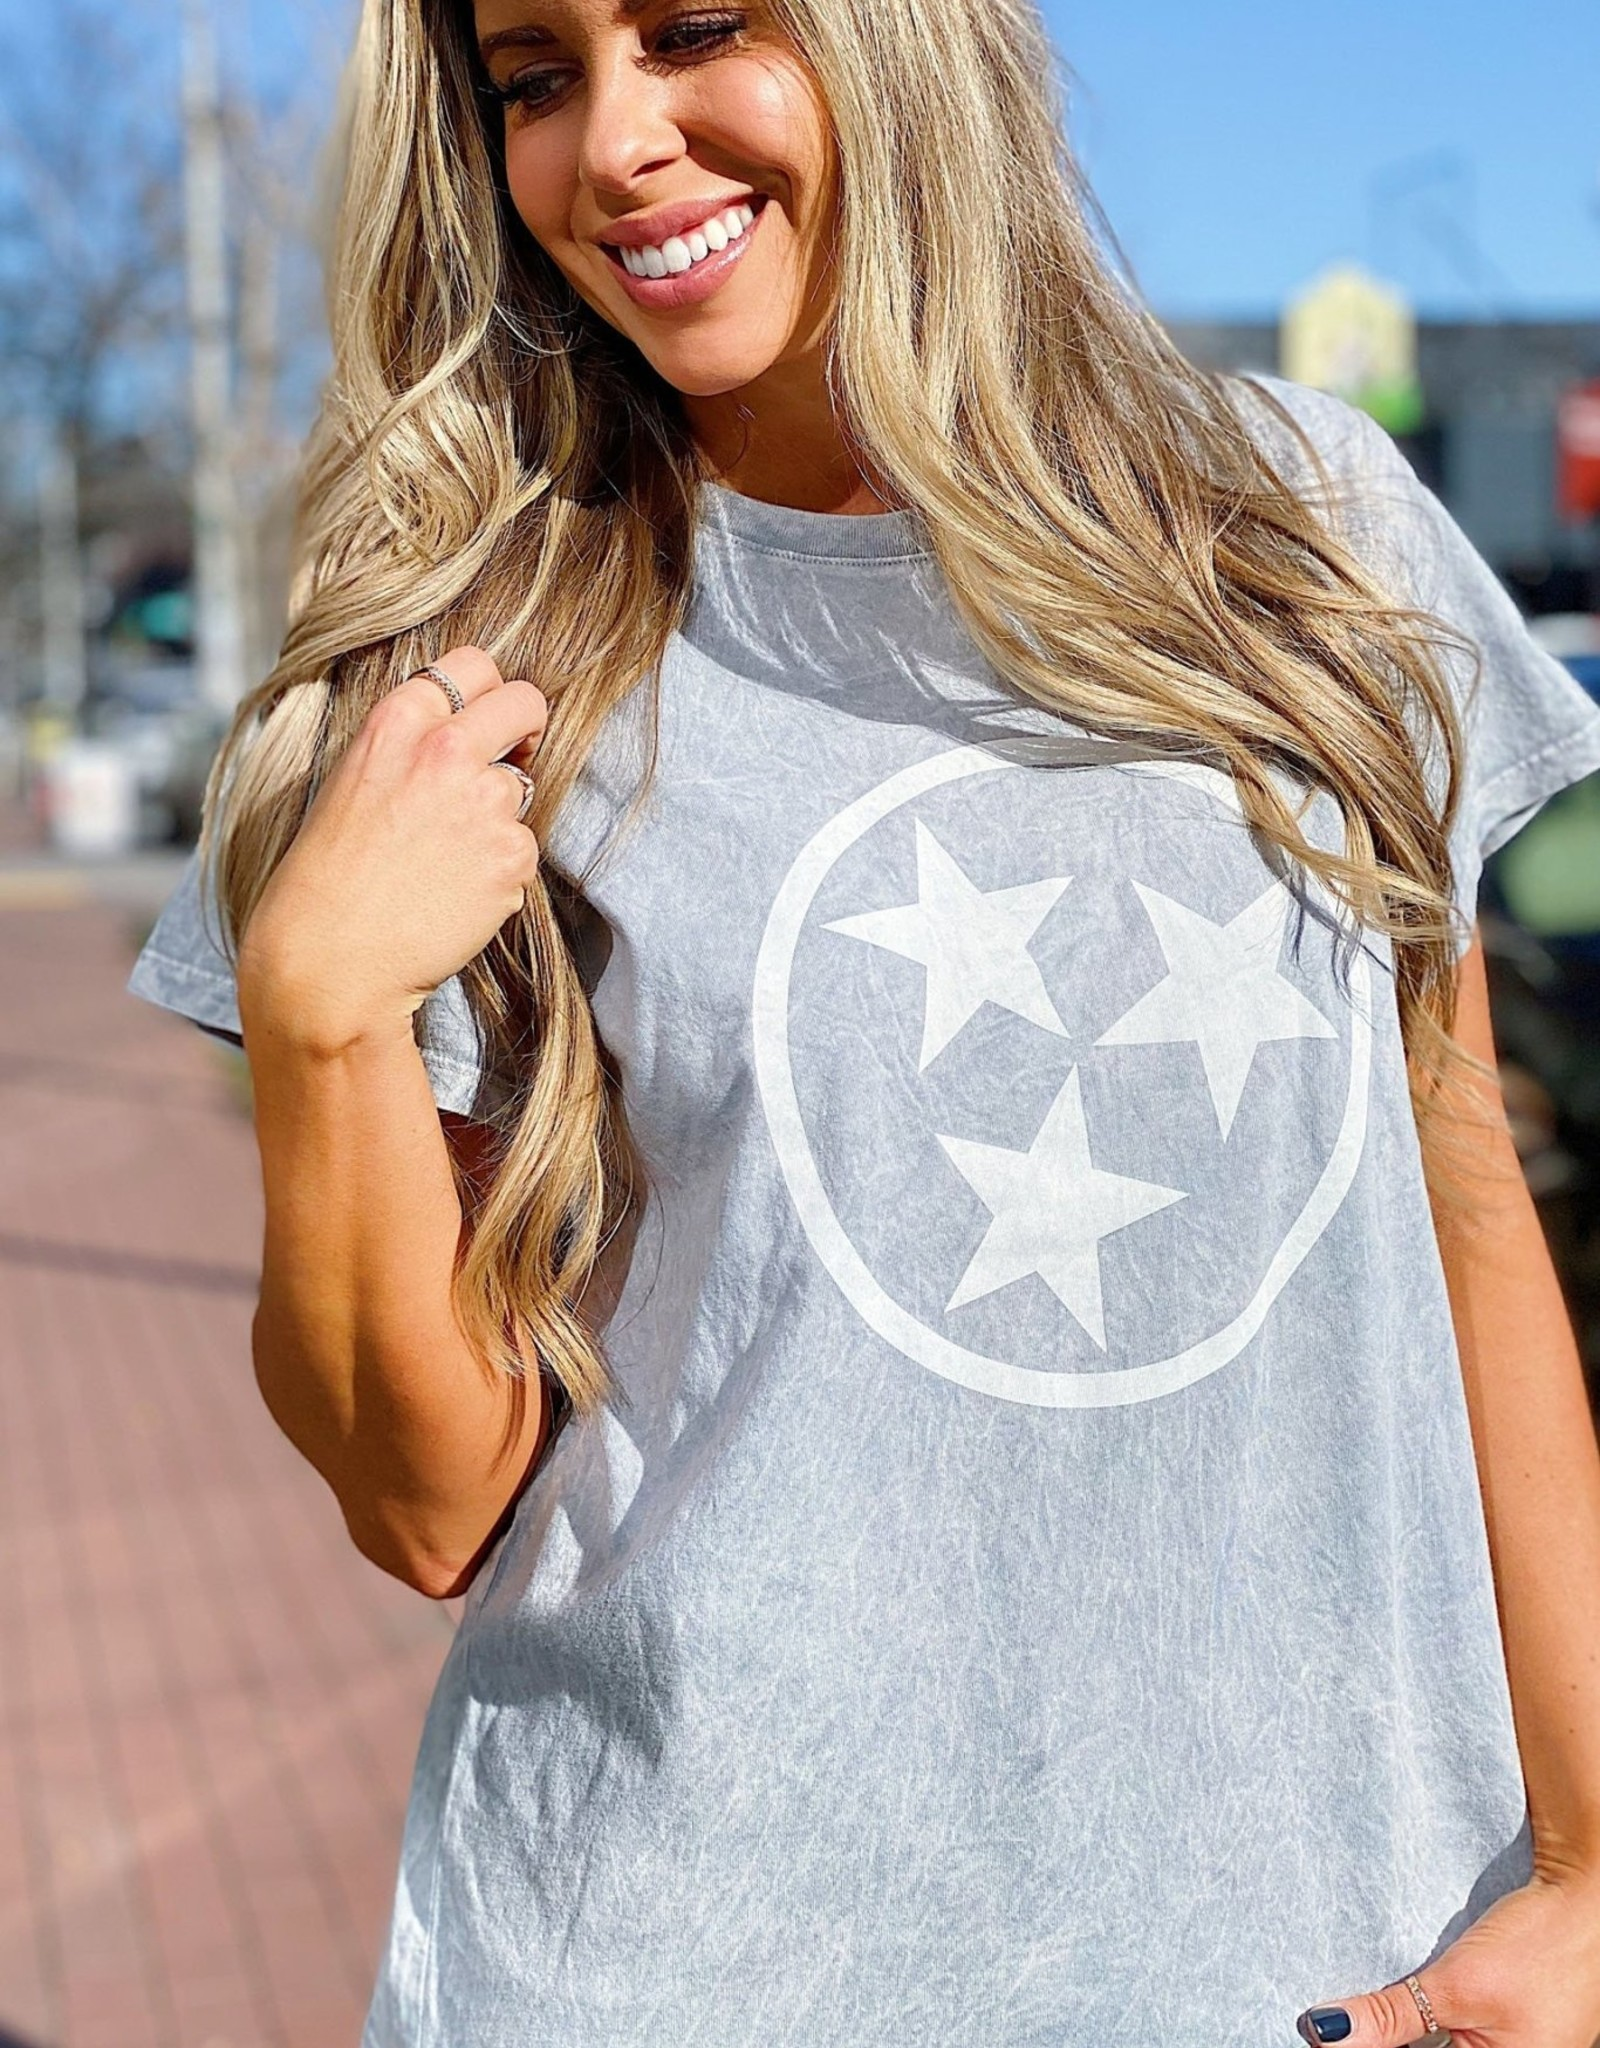 Nash Collection The Nash Collection TShirt- Tristar Acid Wash